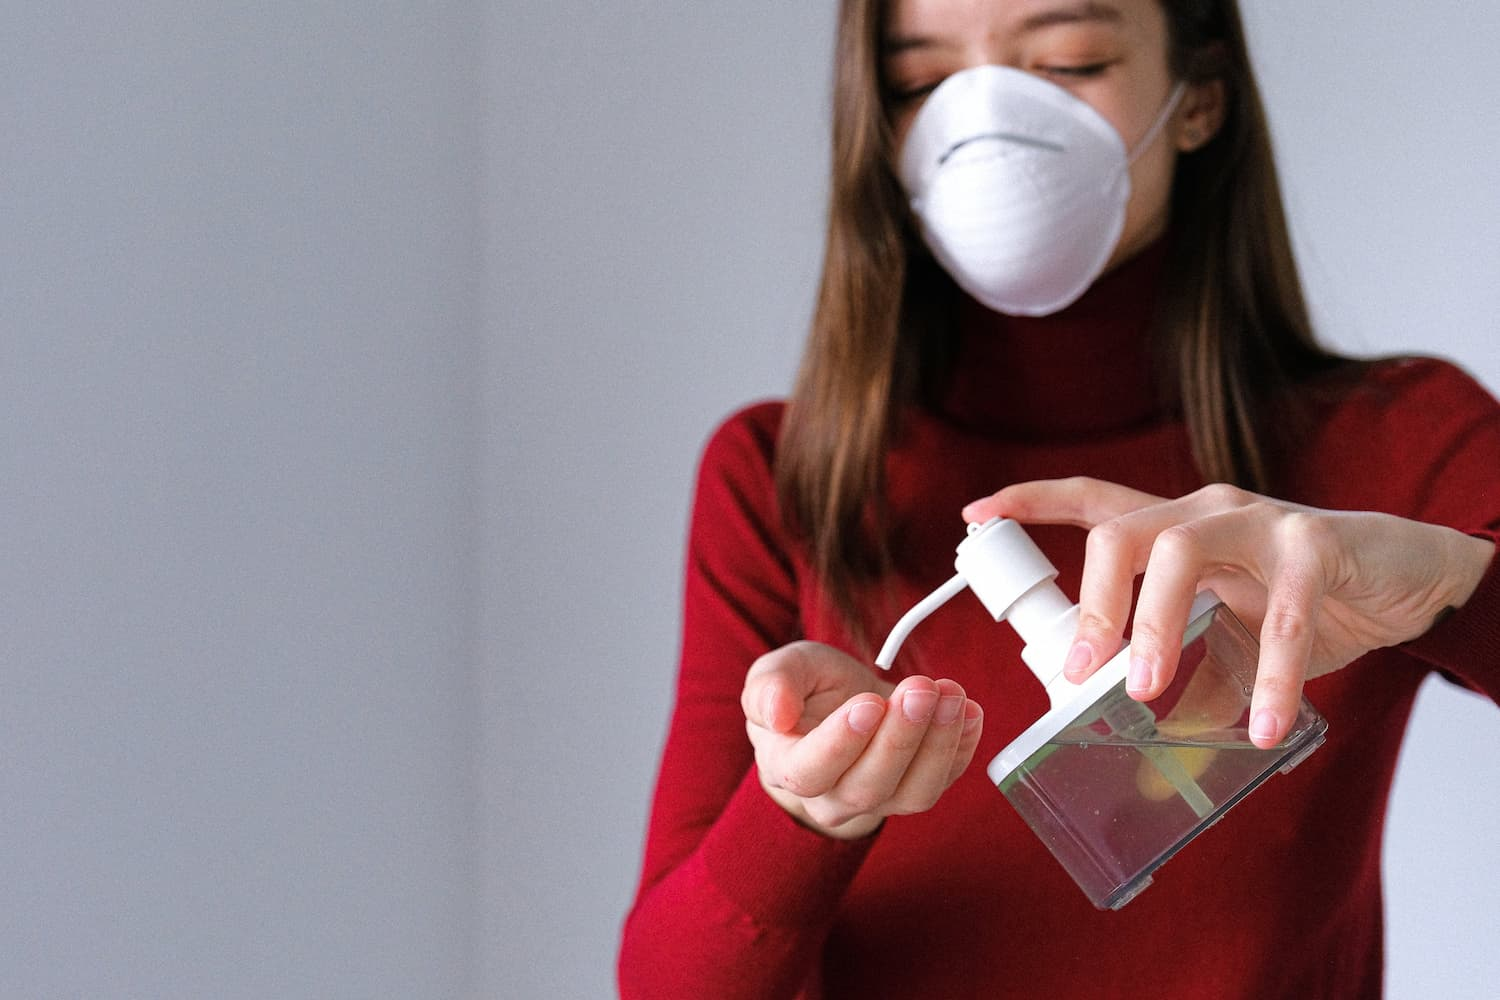 Germaphobia, fear of germs, bacteria, viruses or other microorganisms